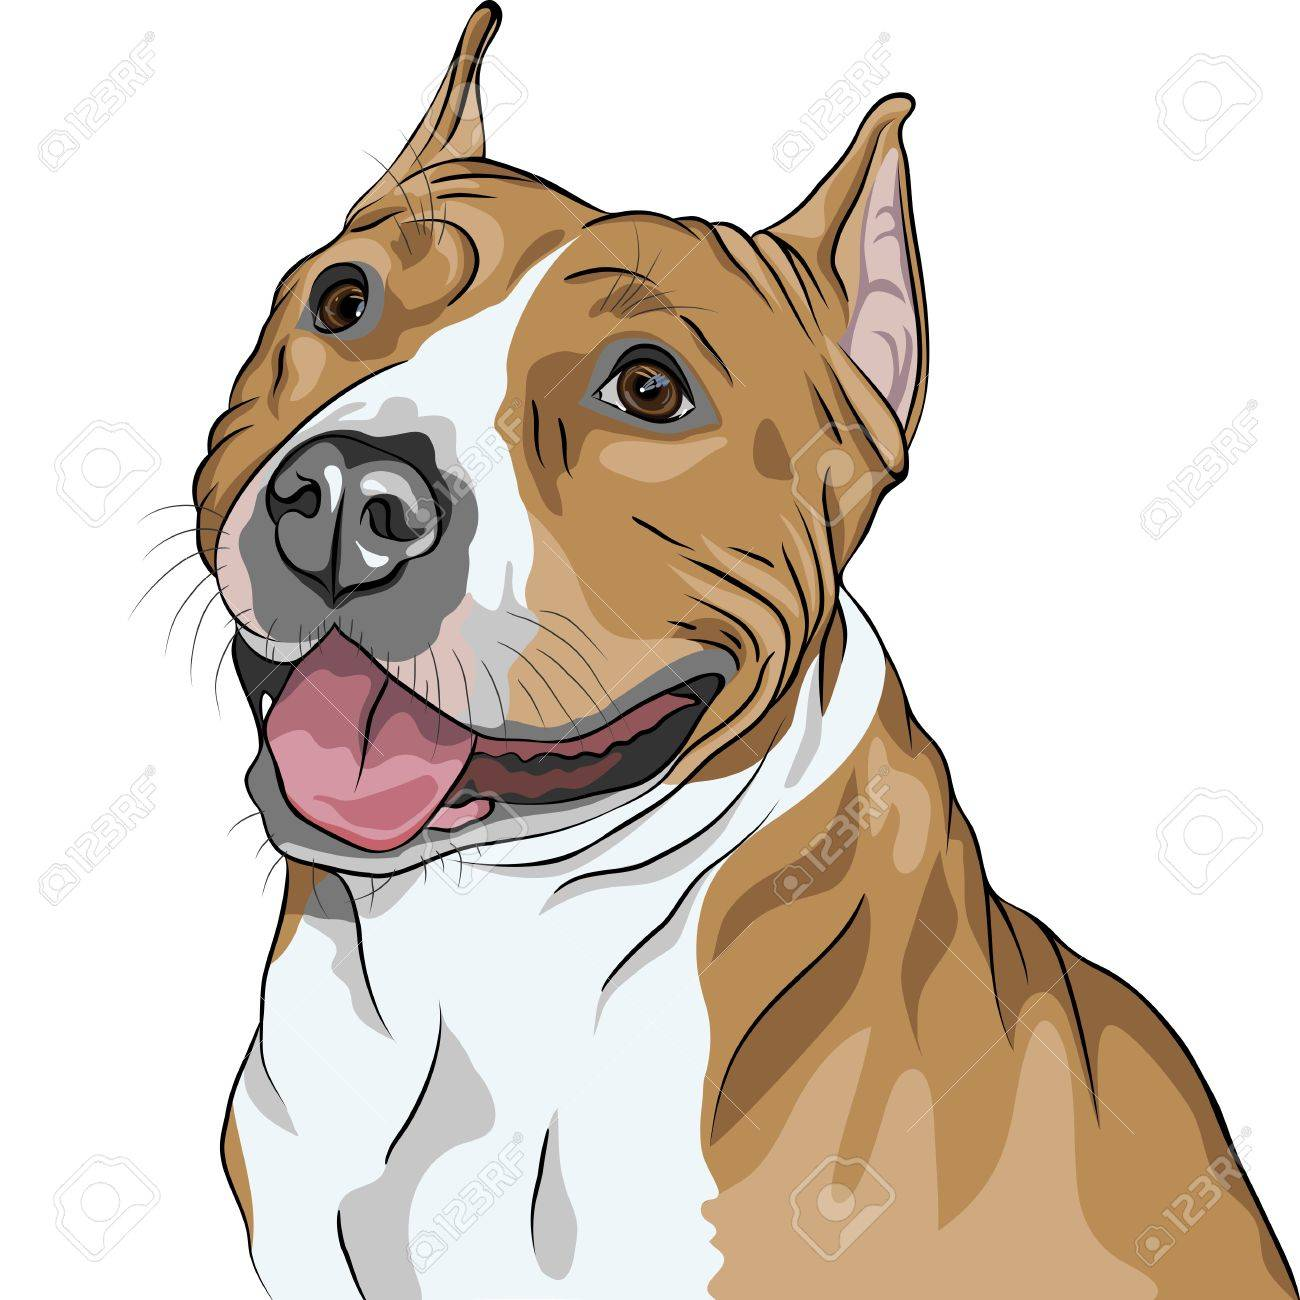 sketch, closeup portrait of the dog American Staffordshire Terrier breed smiles Stock Vector - 12798361